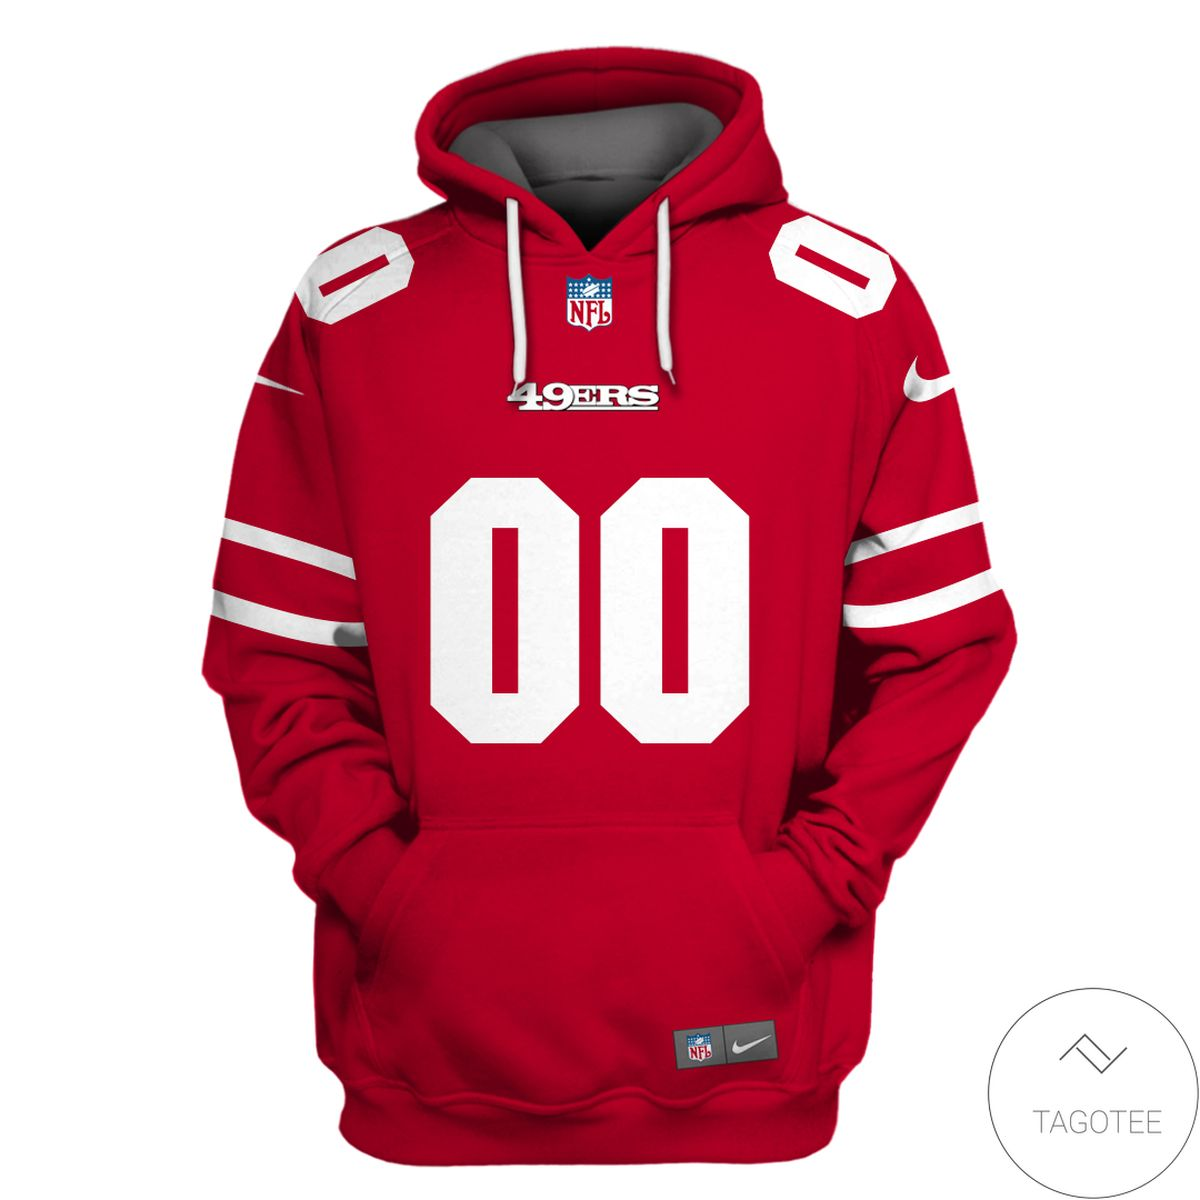 Print On Demand Personalized Name And Number San Francisco 49ers 3D All Over Print Hoodie